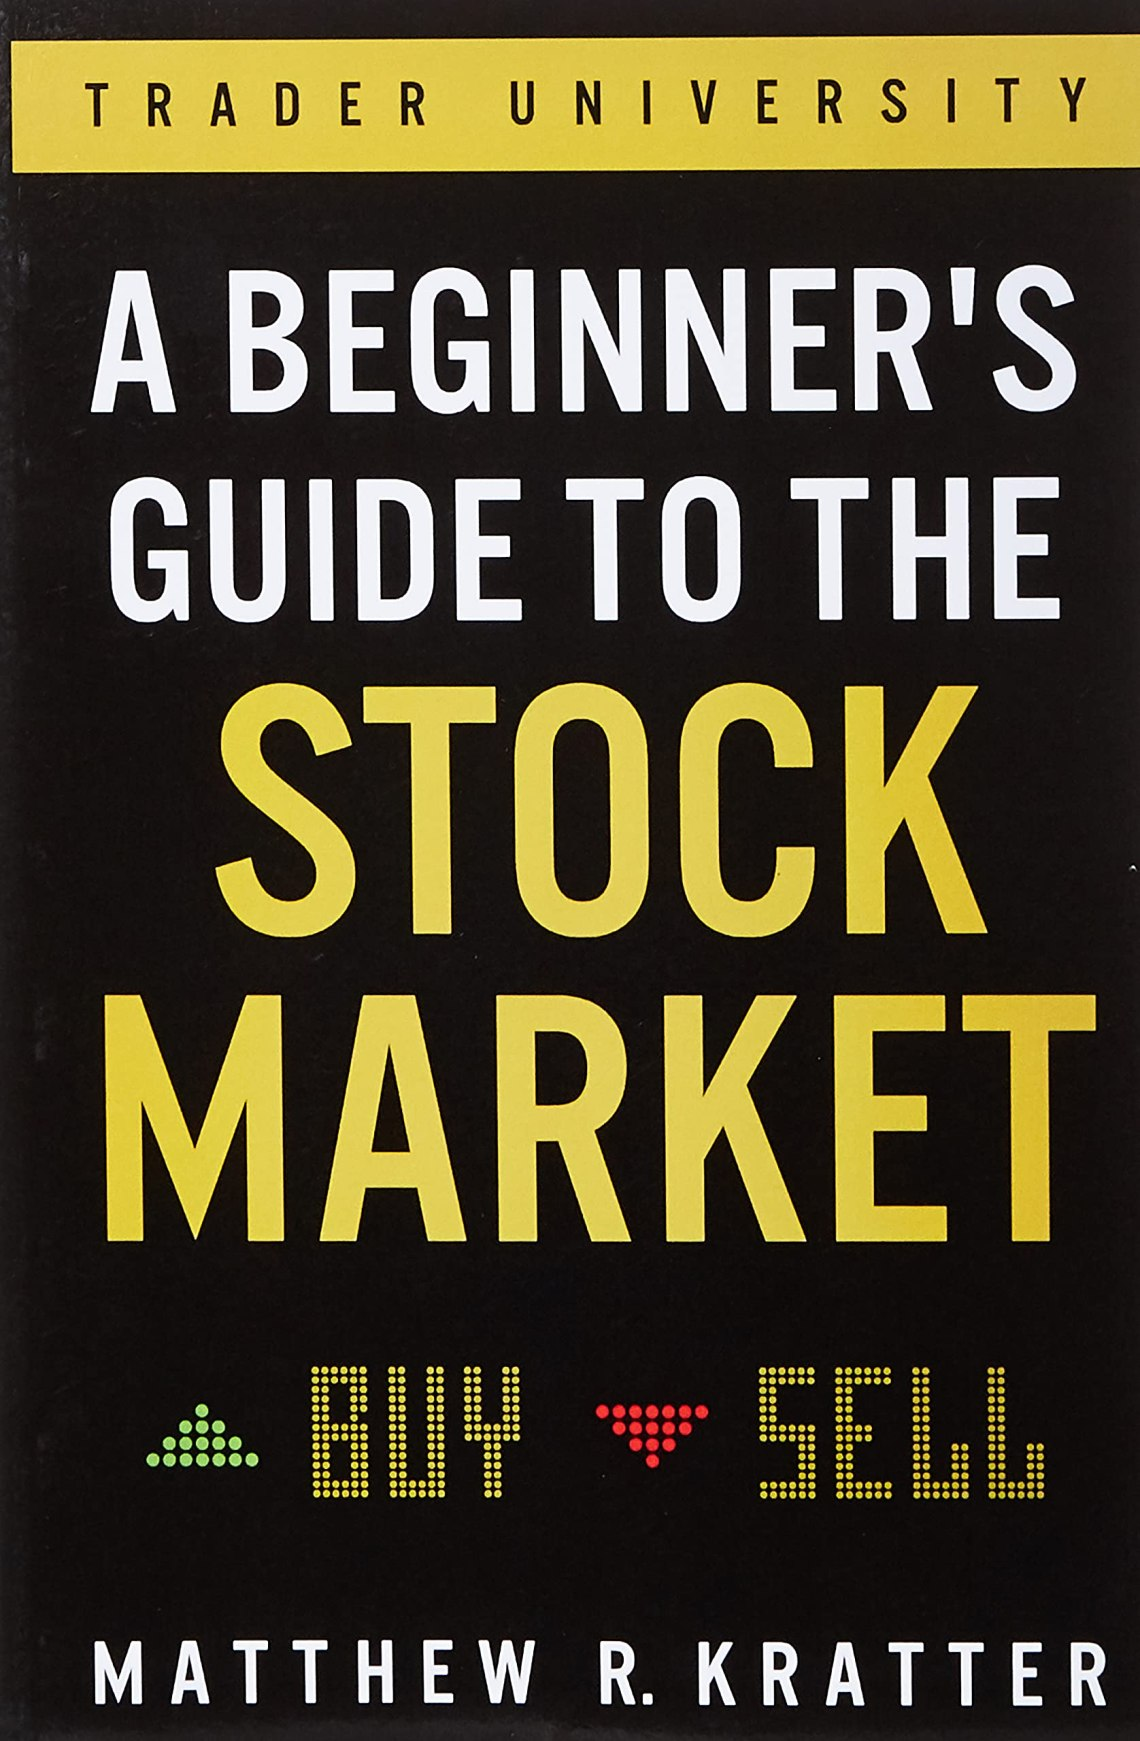 A Beginner's Guide to the Stock Market: one of investing books